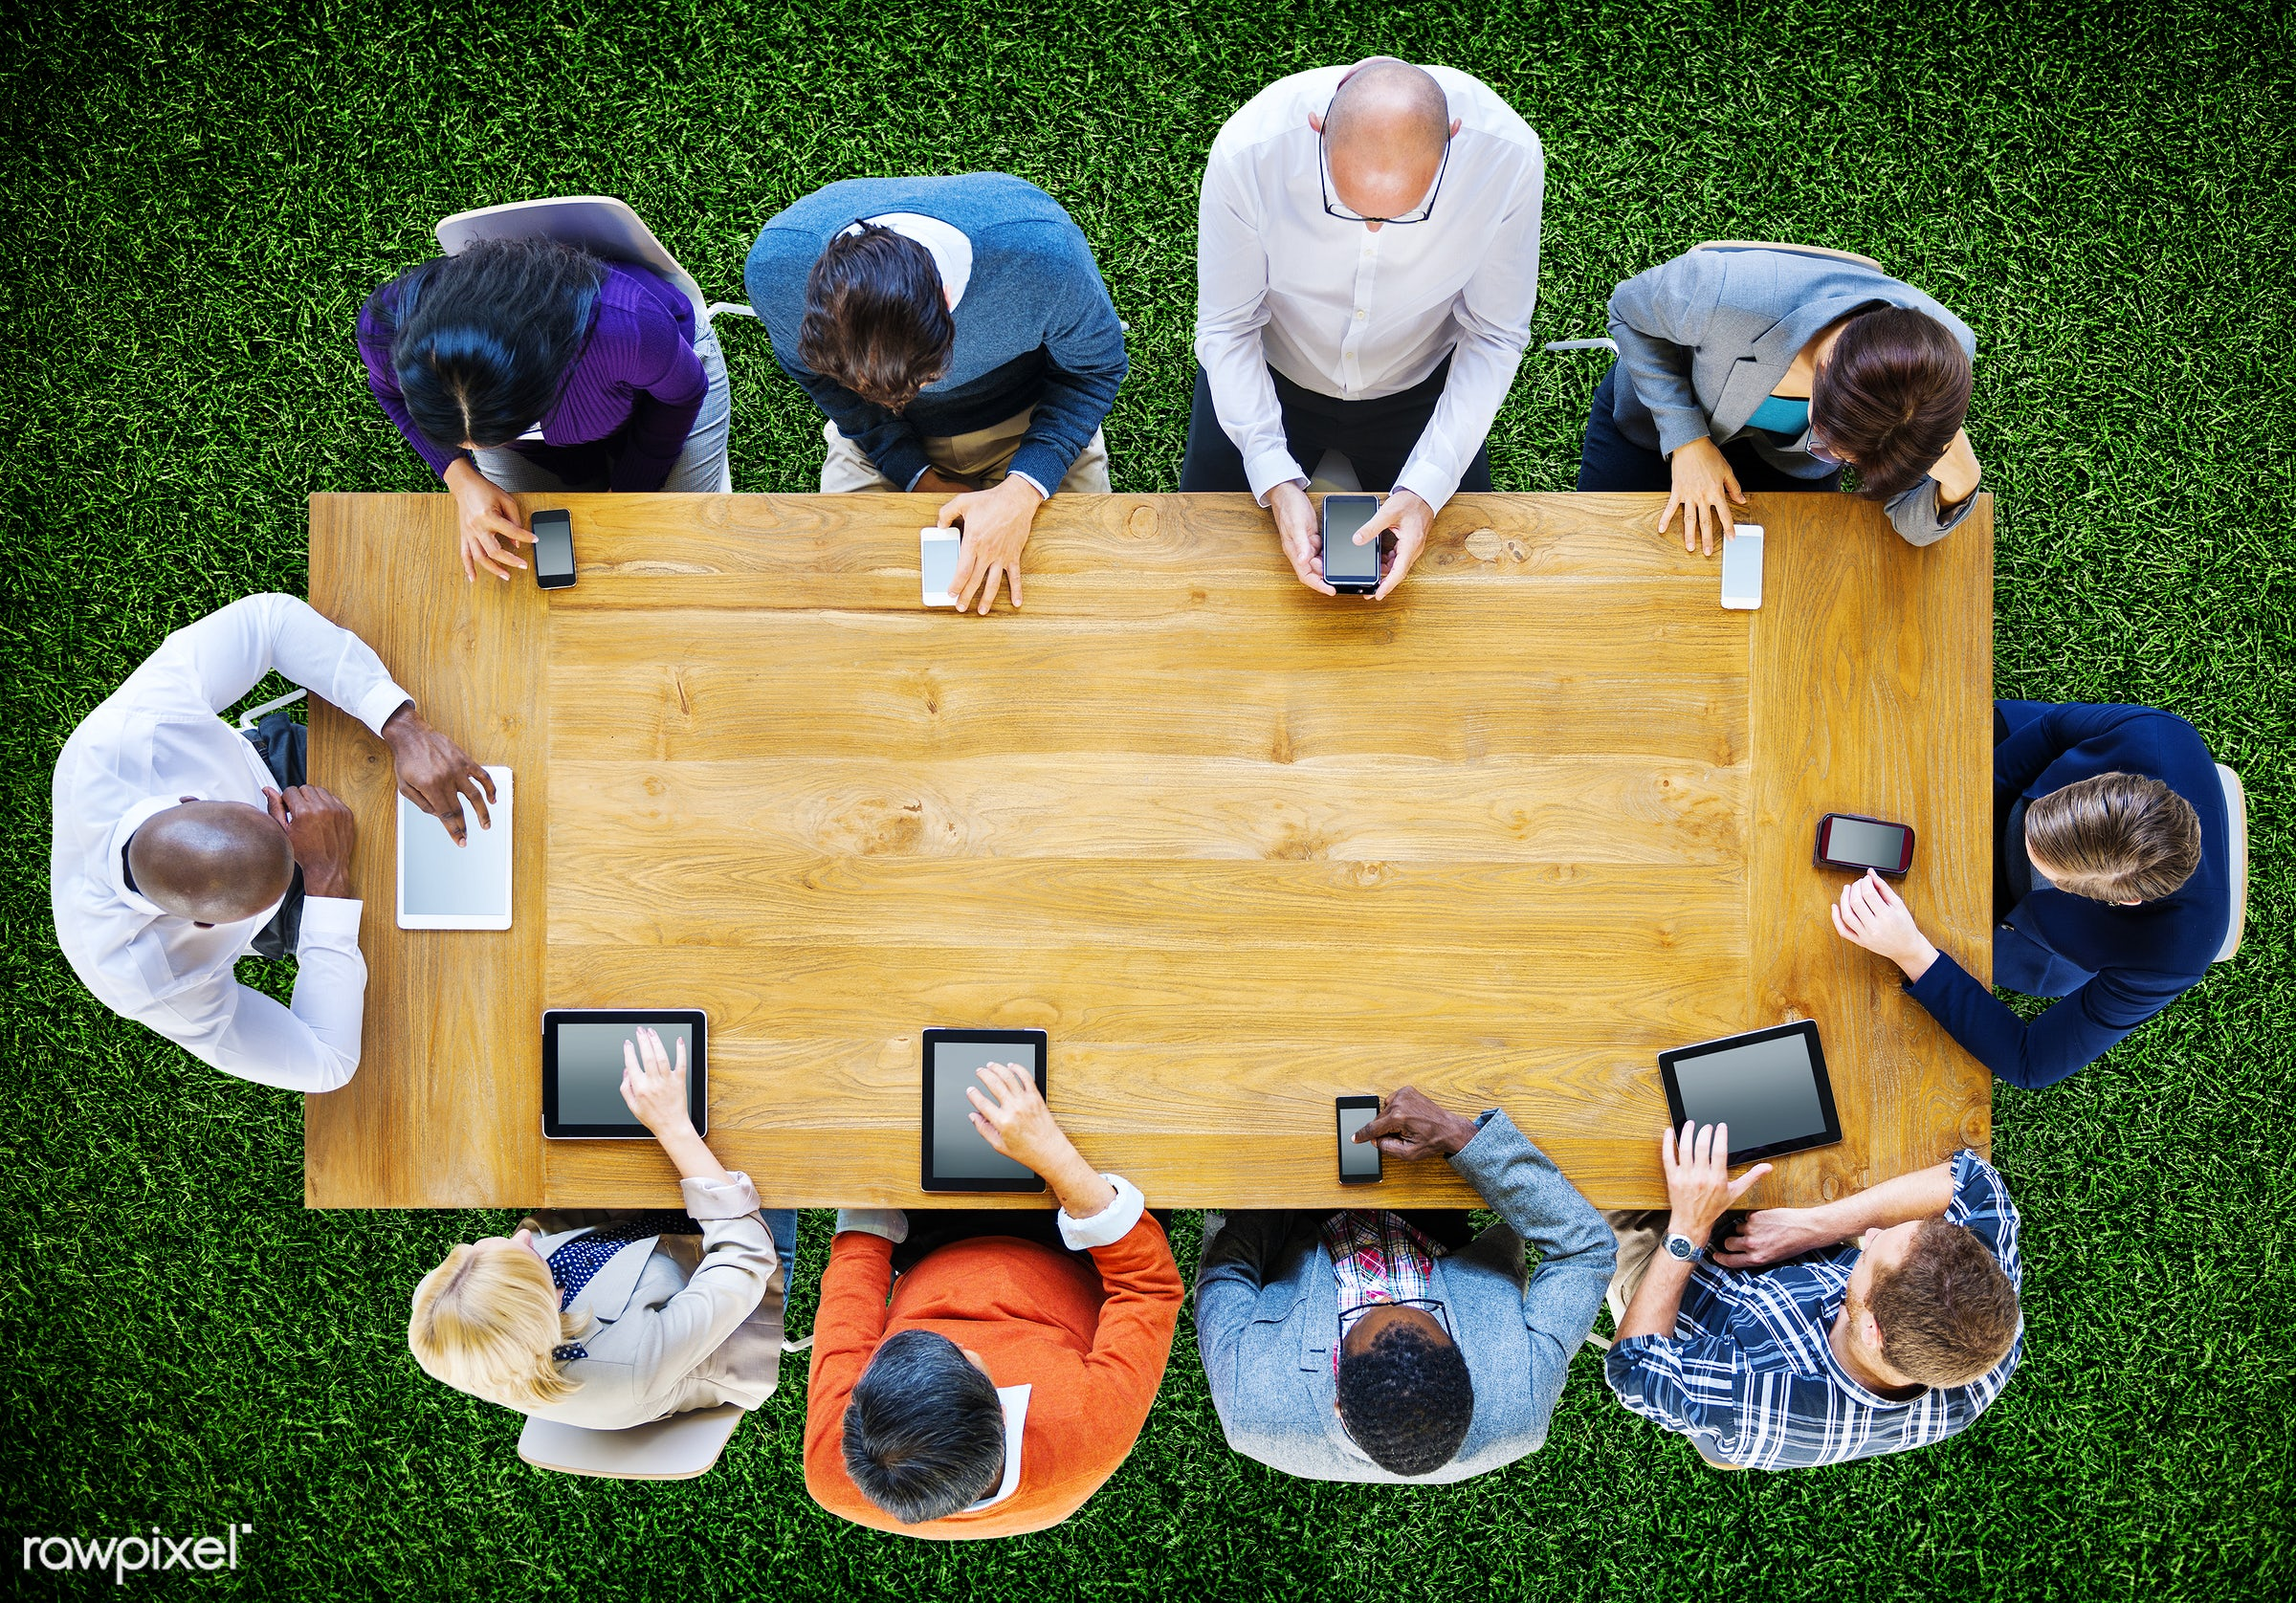 mobility, aerial view, backdrop, background, brainstorming, business, business people, casual, closeup, communication,...